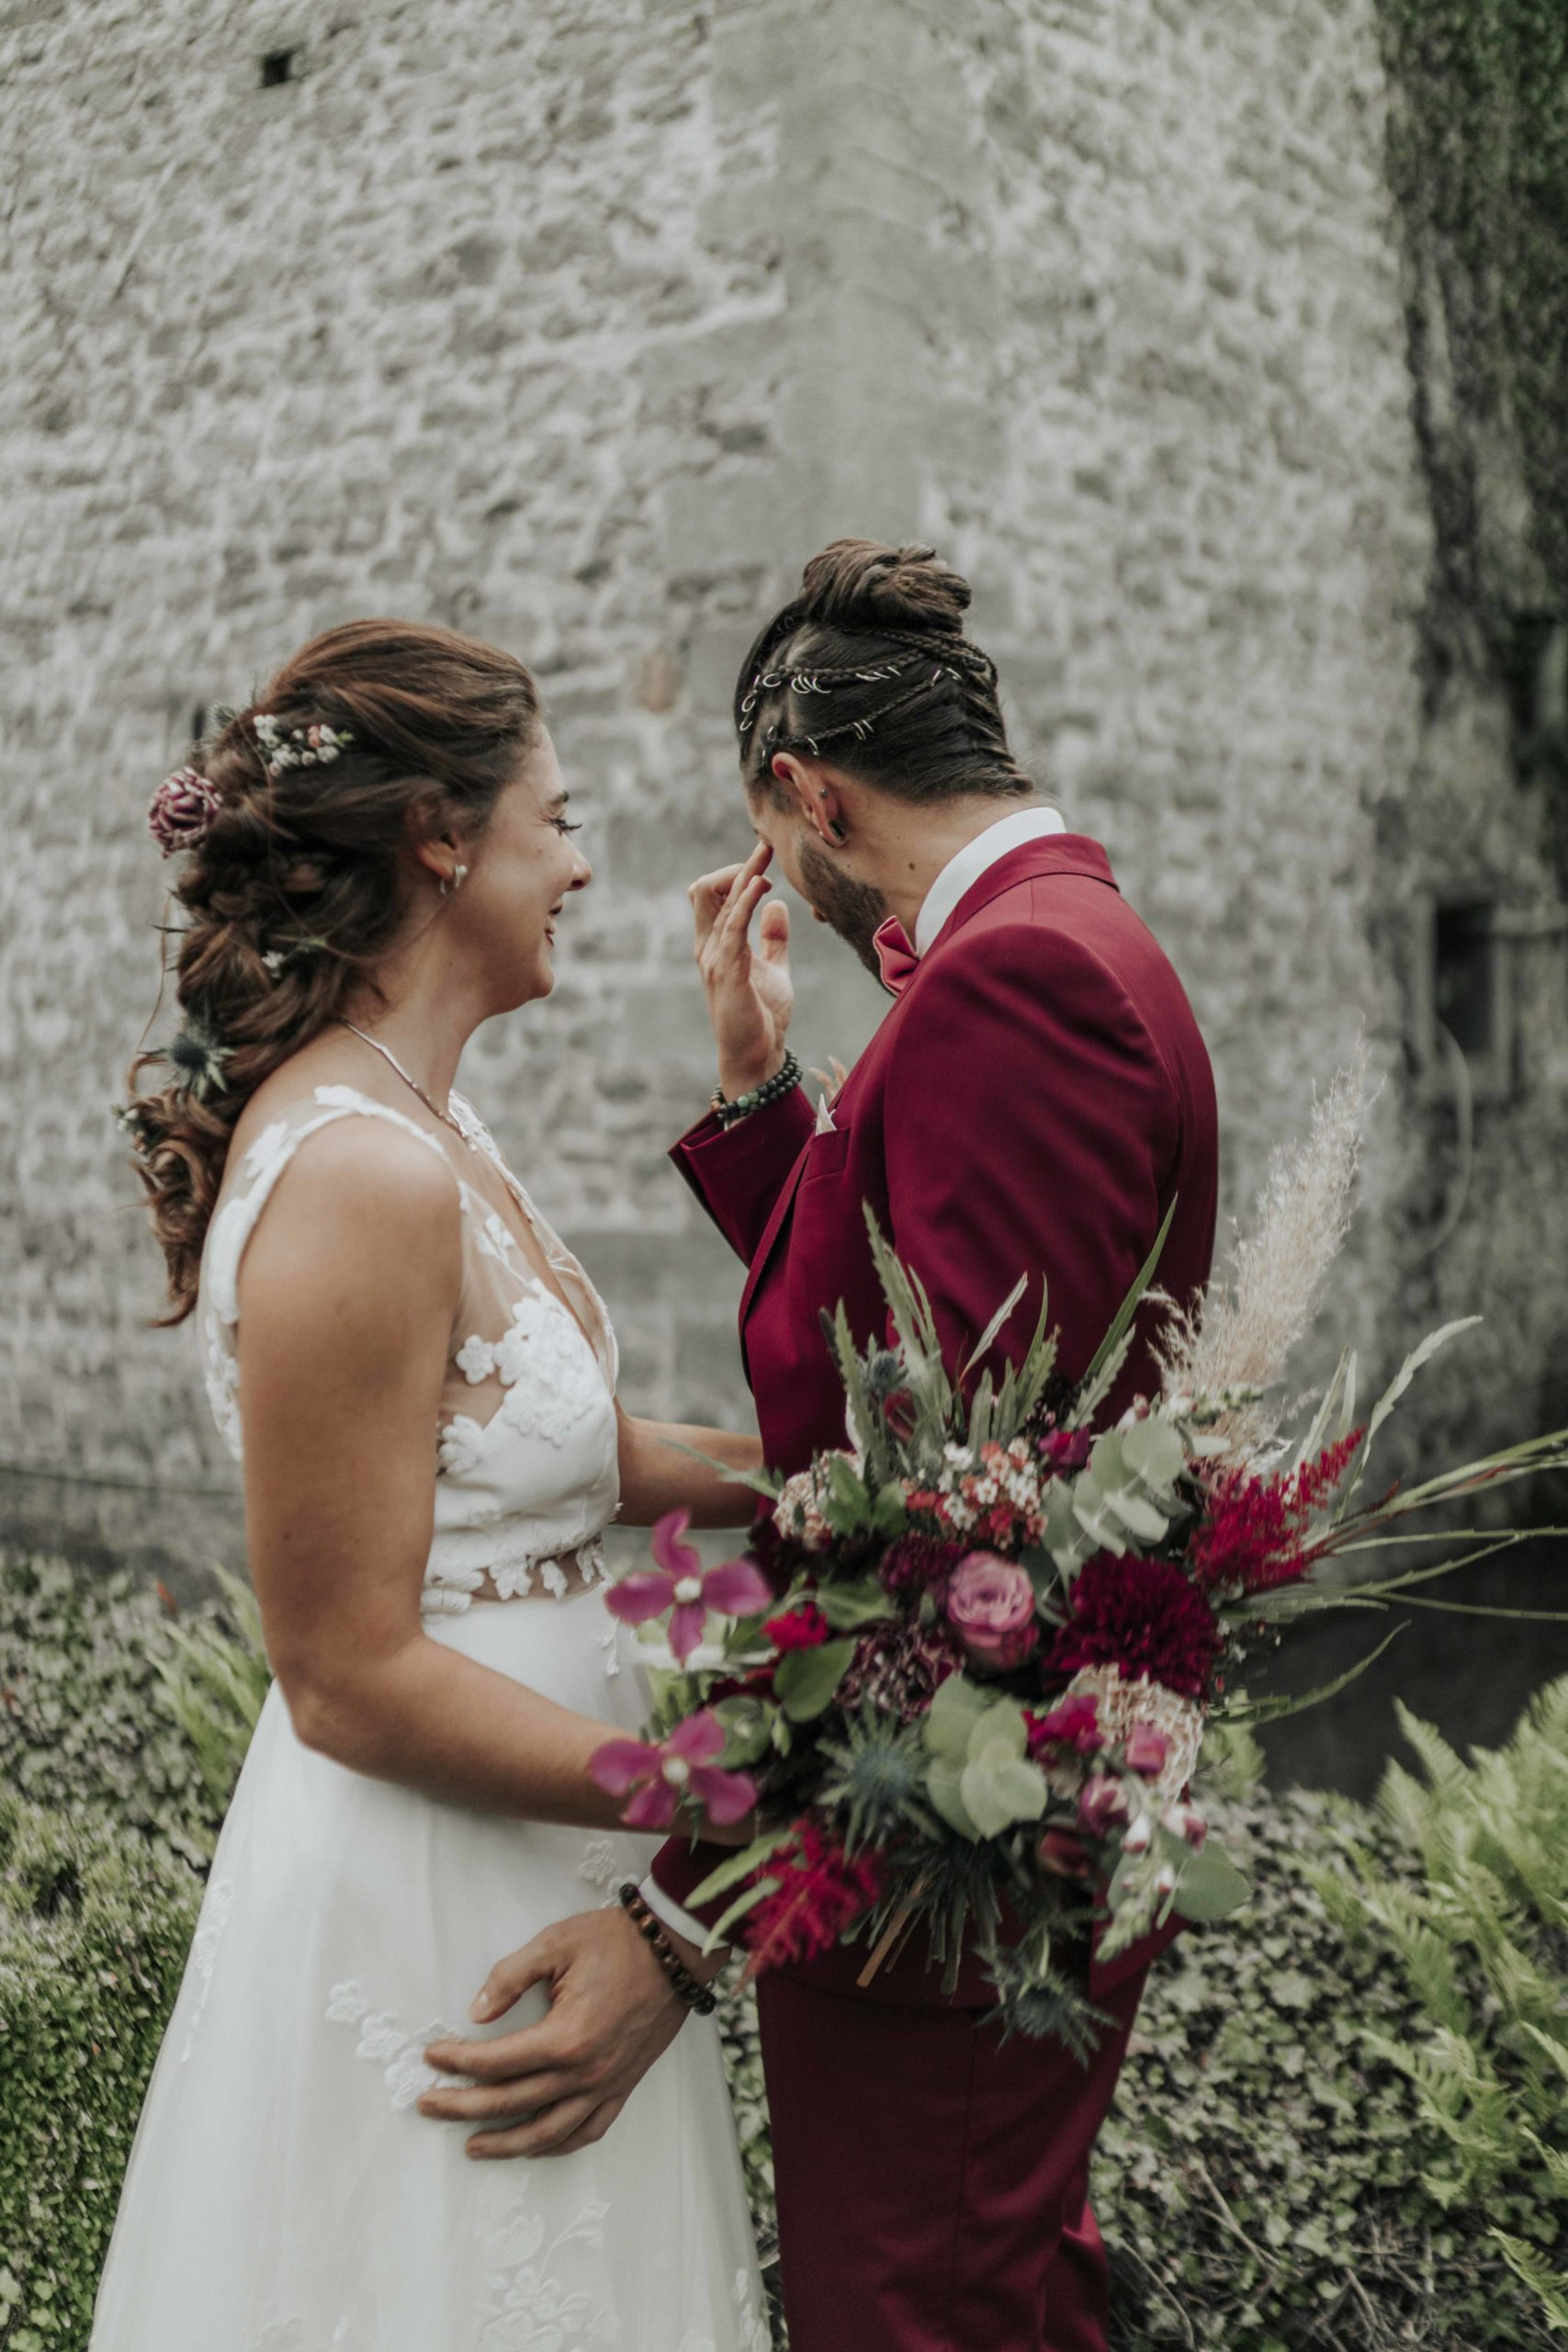 FOREVER_FANNY_MYARD_PHOTOGRAPHY_LN_MARIAGE-253